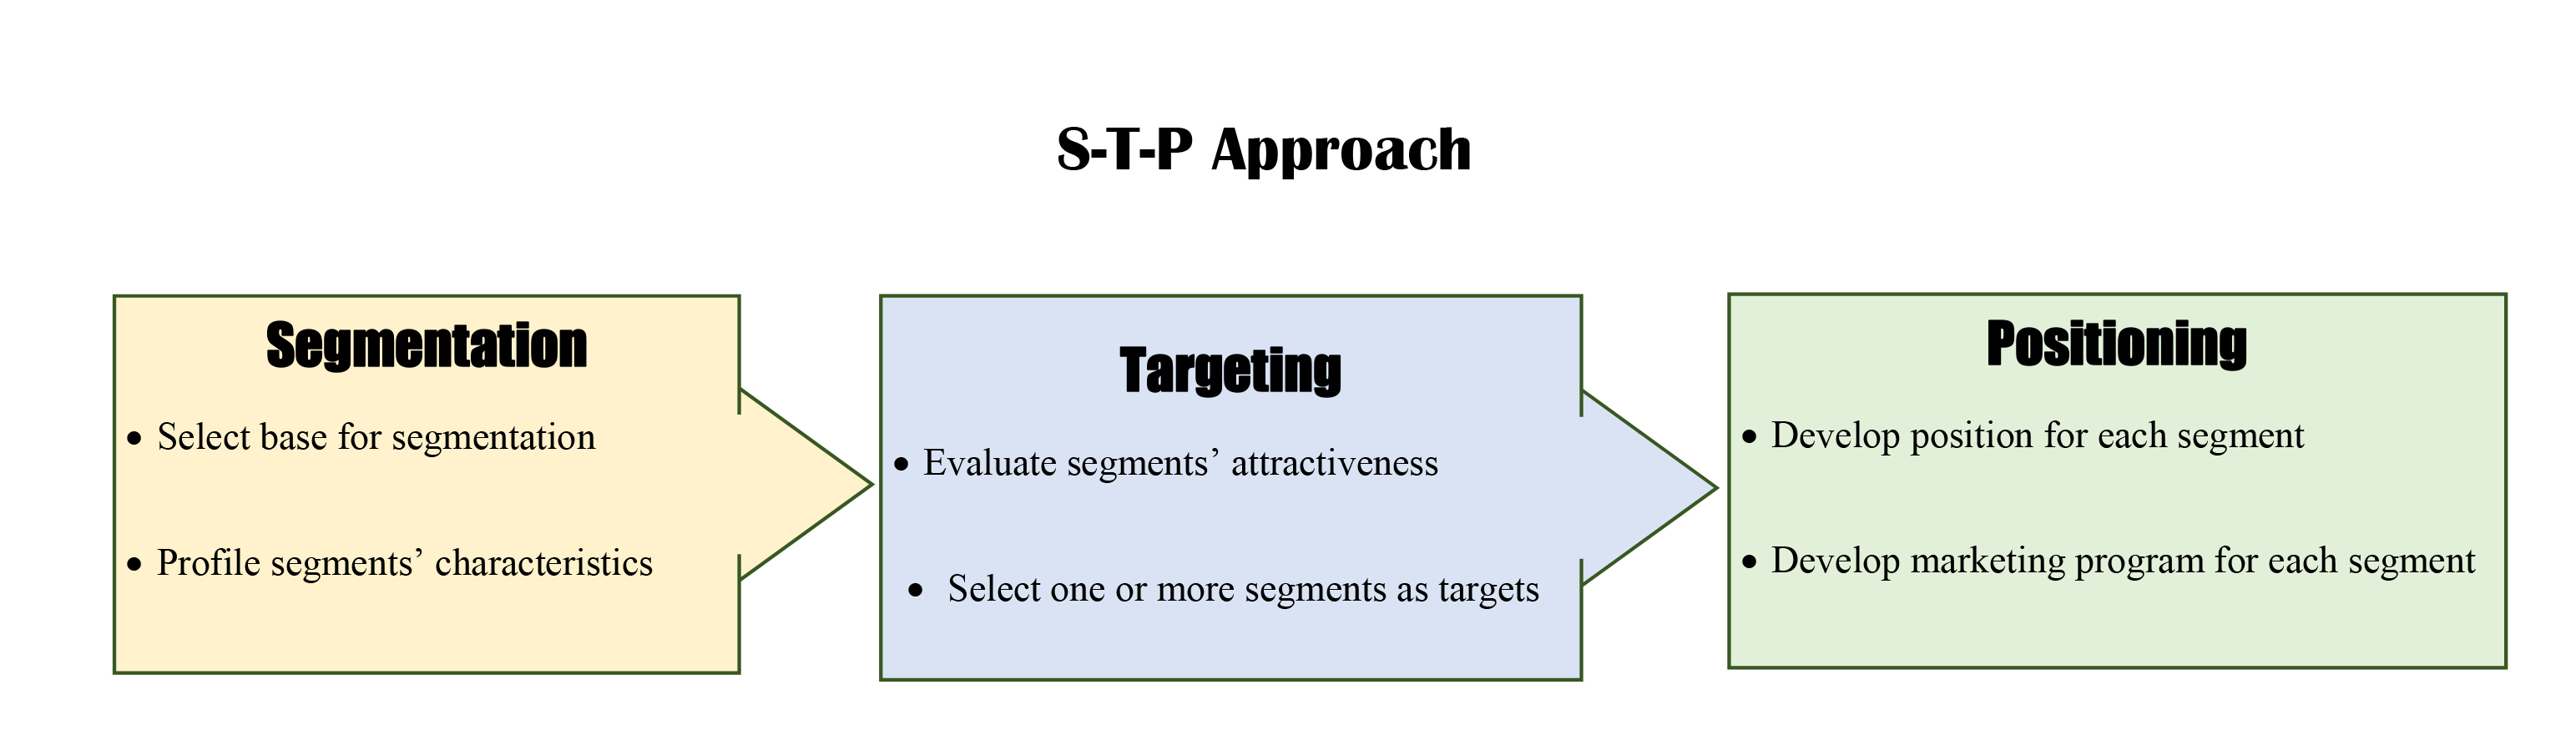 identifying the target market upload org commons c cd stp approach jpg